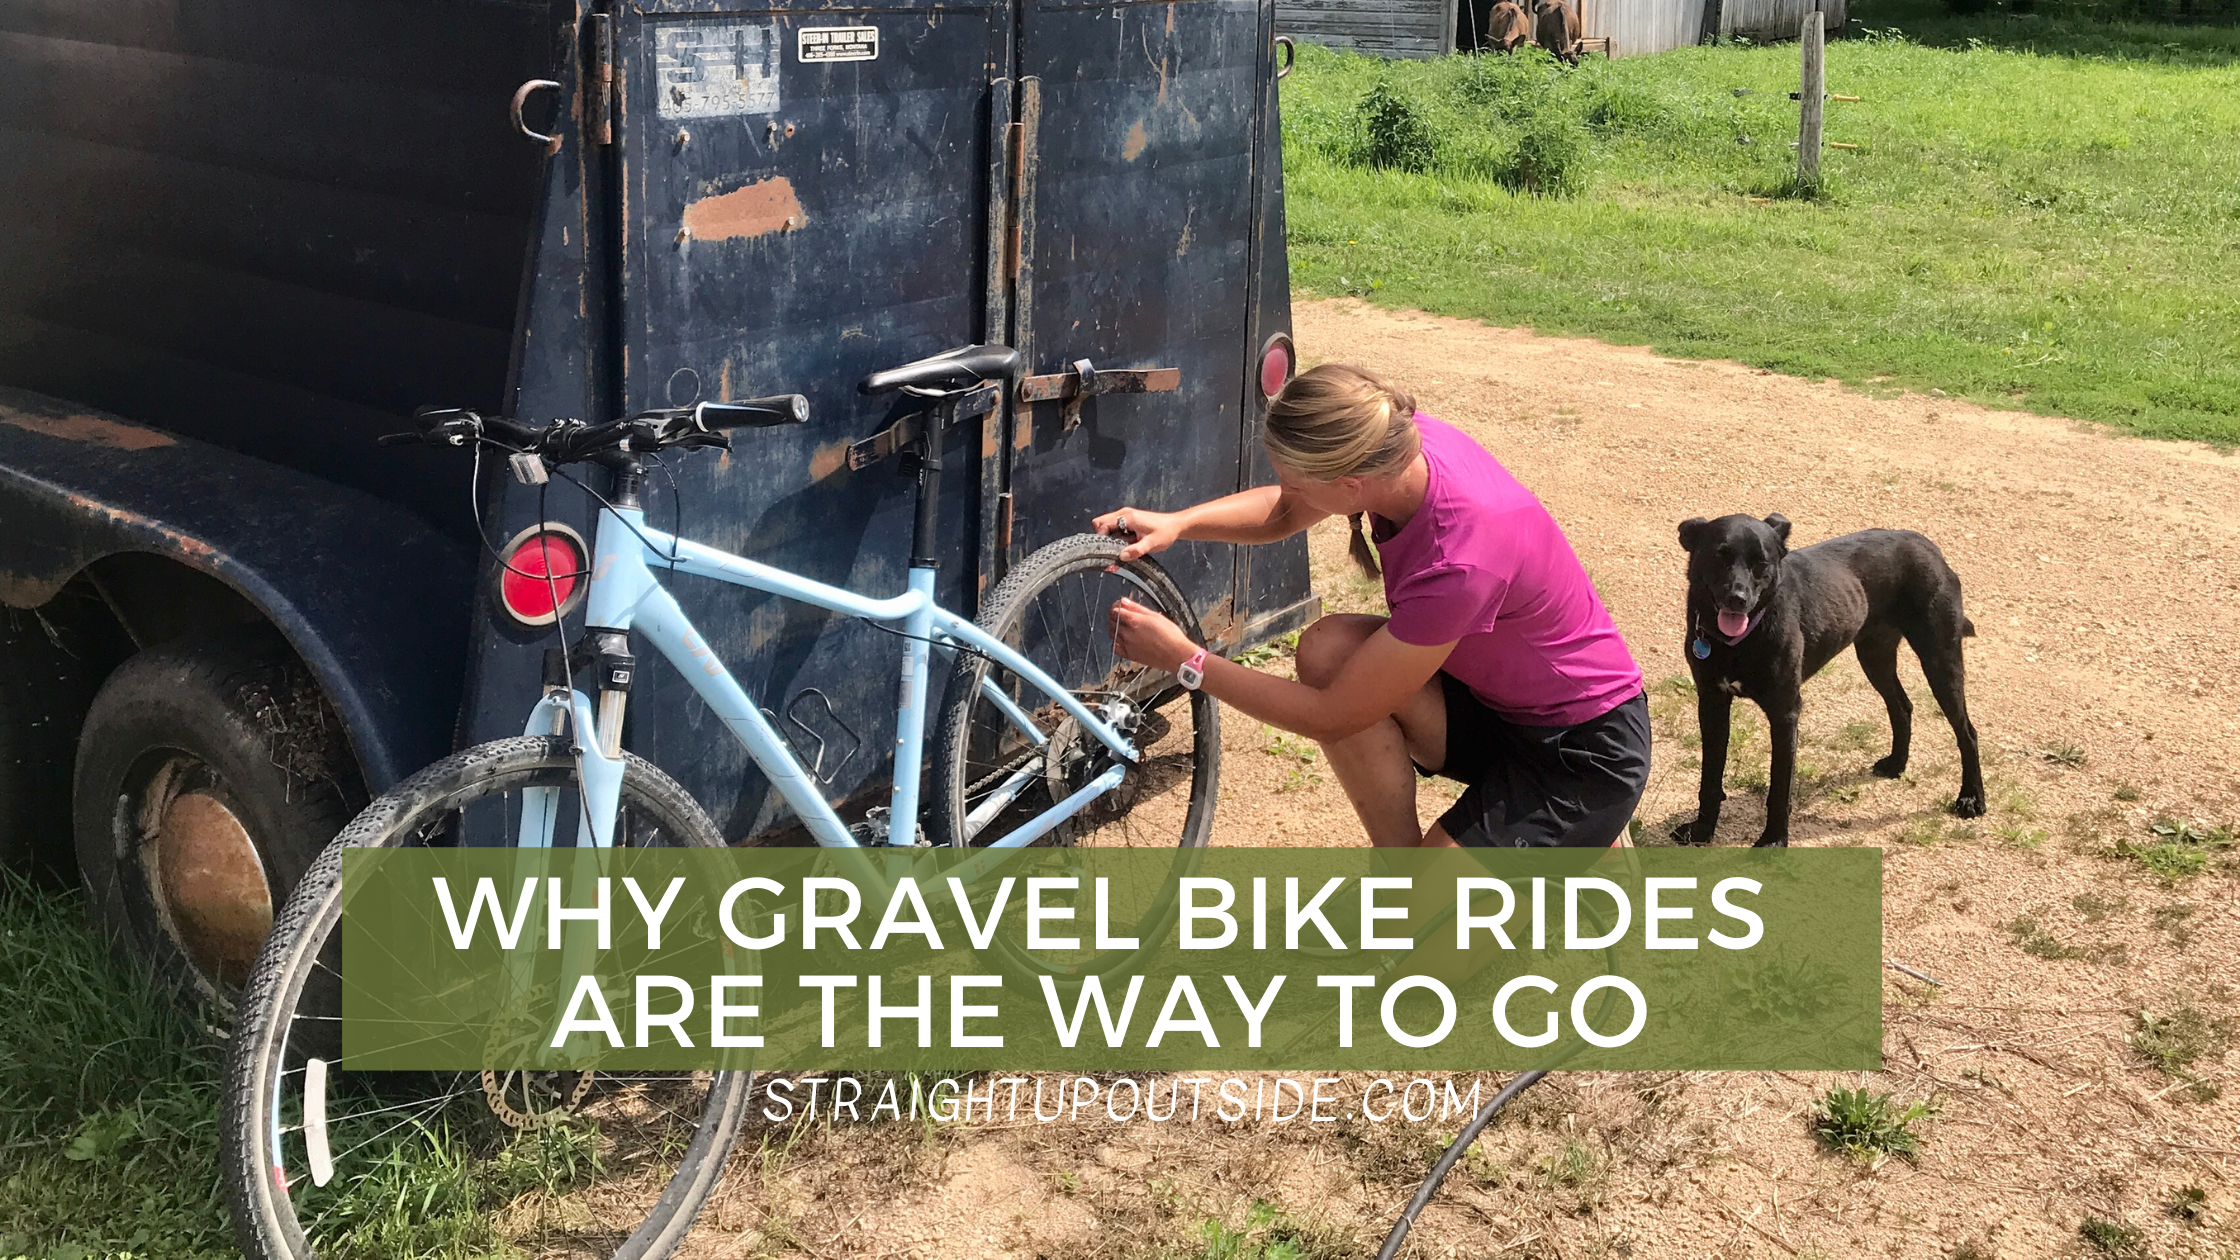 Why Gravel Bike Rides Are the Way to Go